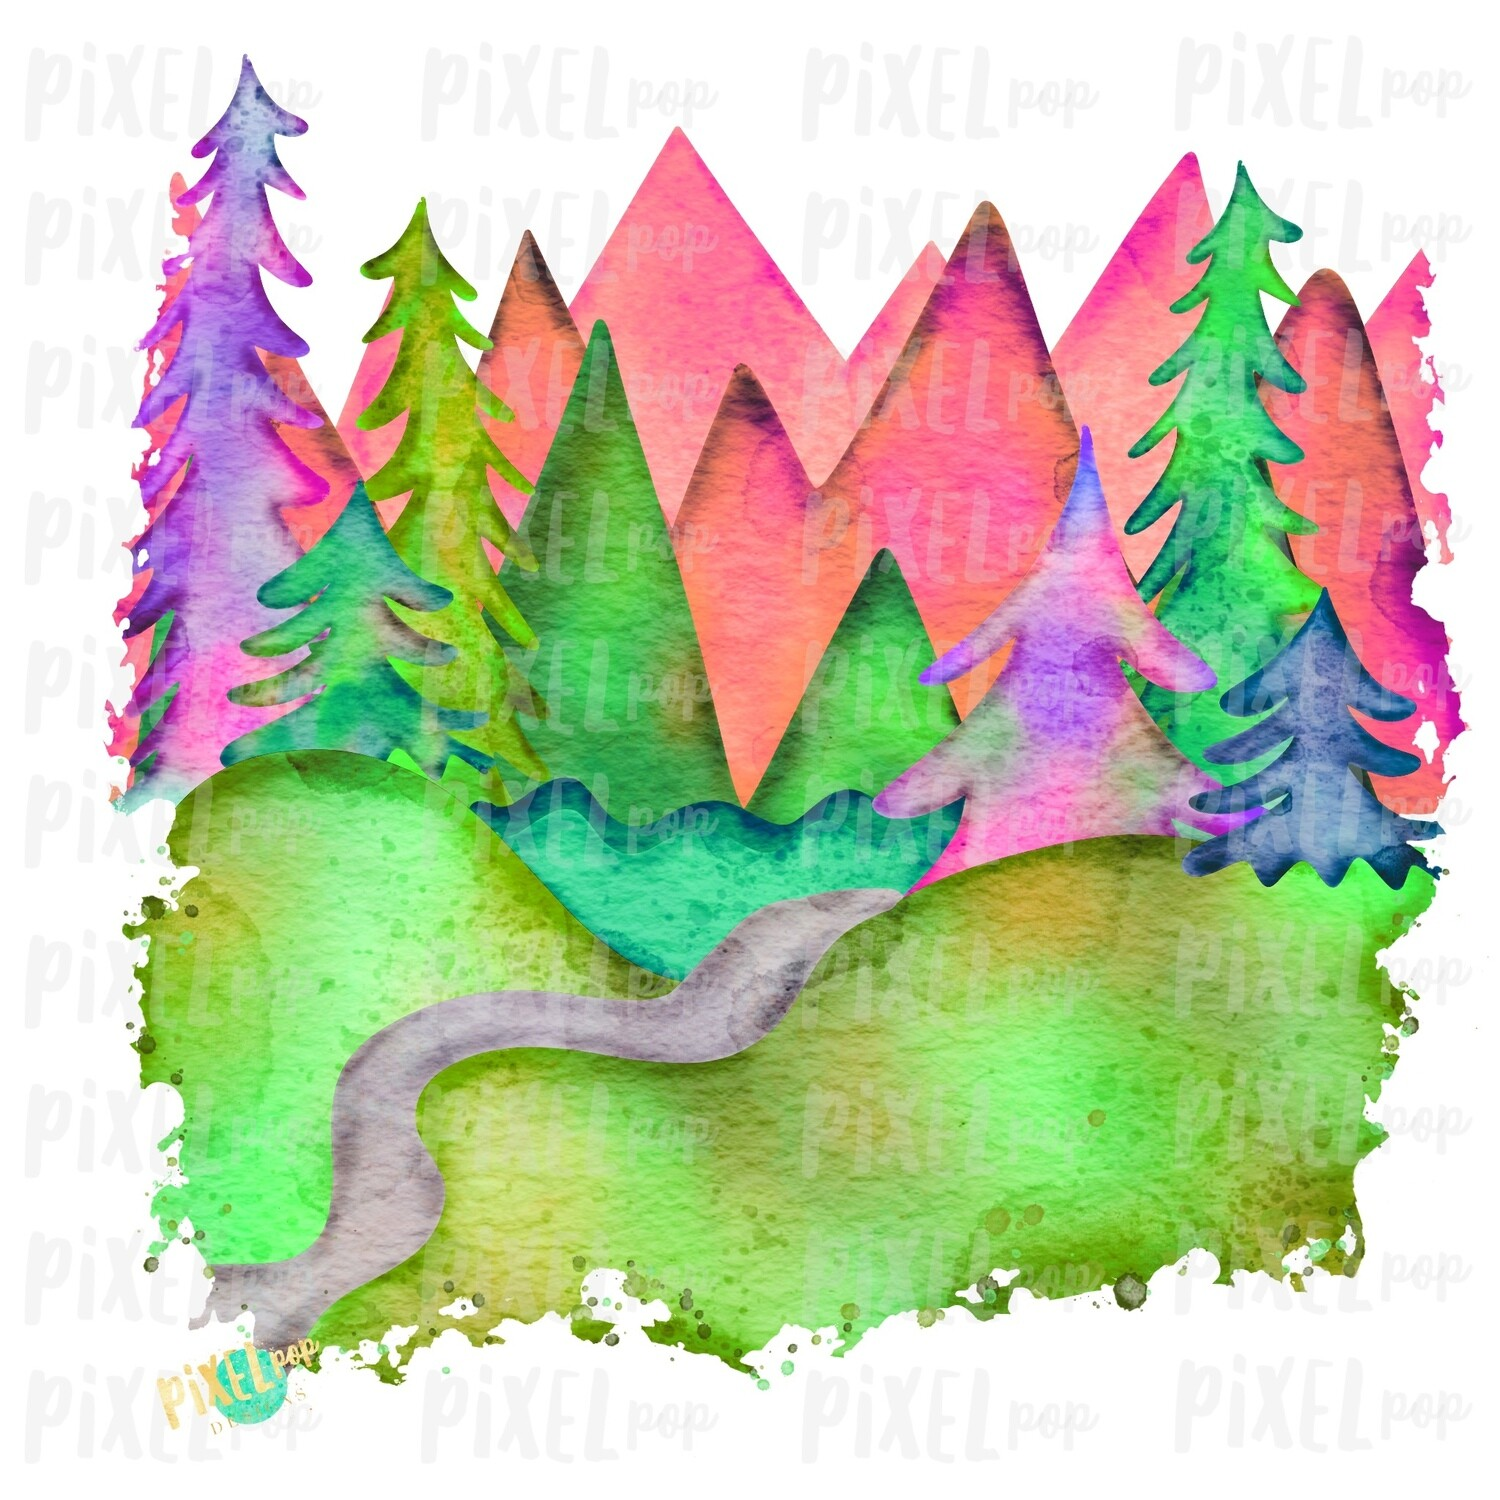 Watercolor Forest Woods Art in GLOW Sublimation Transfer Design PNG   Hand Drawn Art   Sublimation PNG   Digital Download   Printable Art